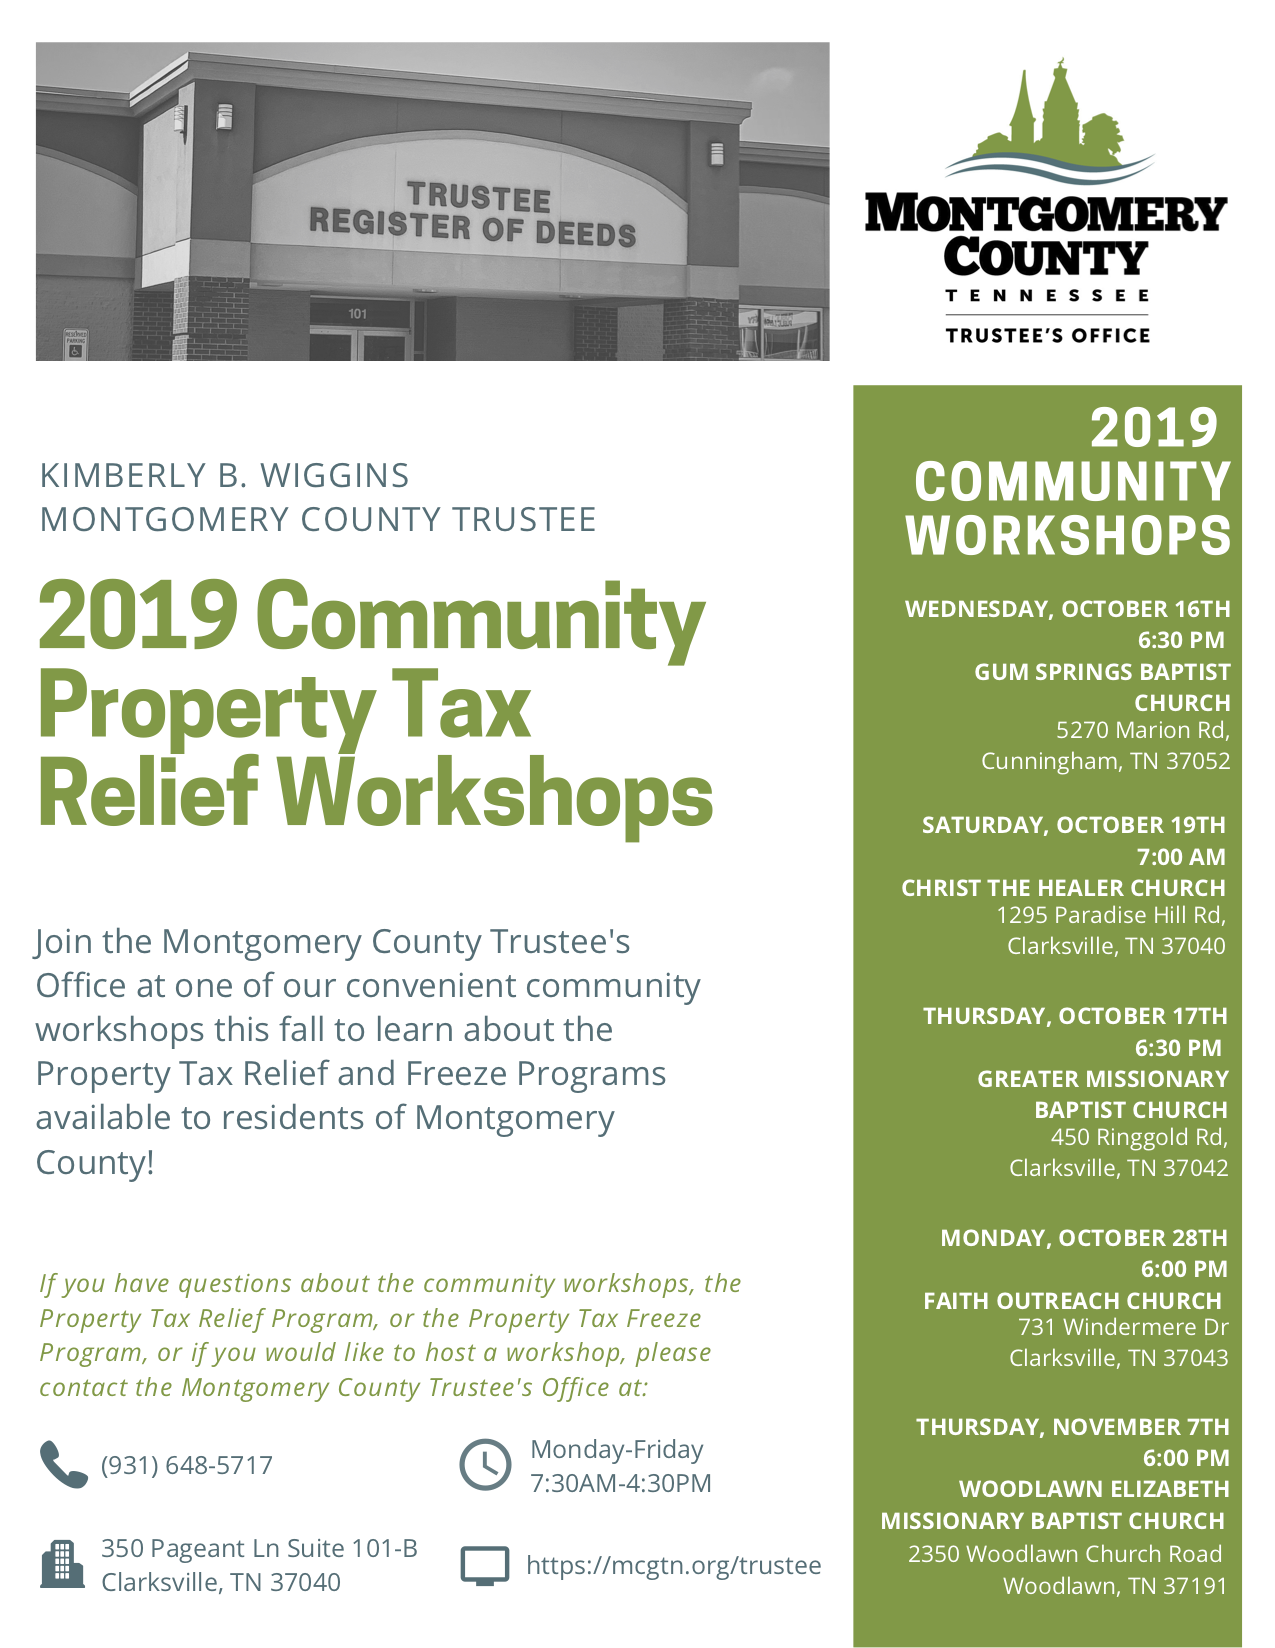 2019 Community Property Tax Relief Workshops